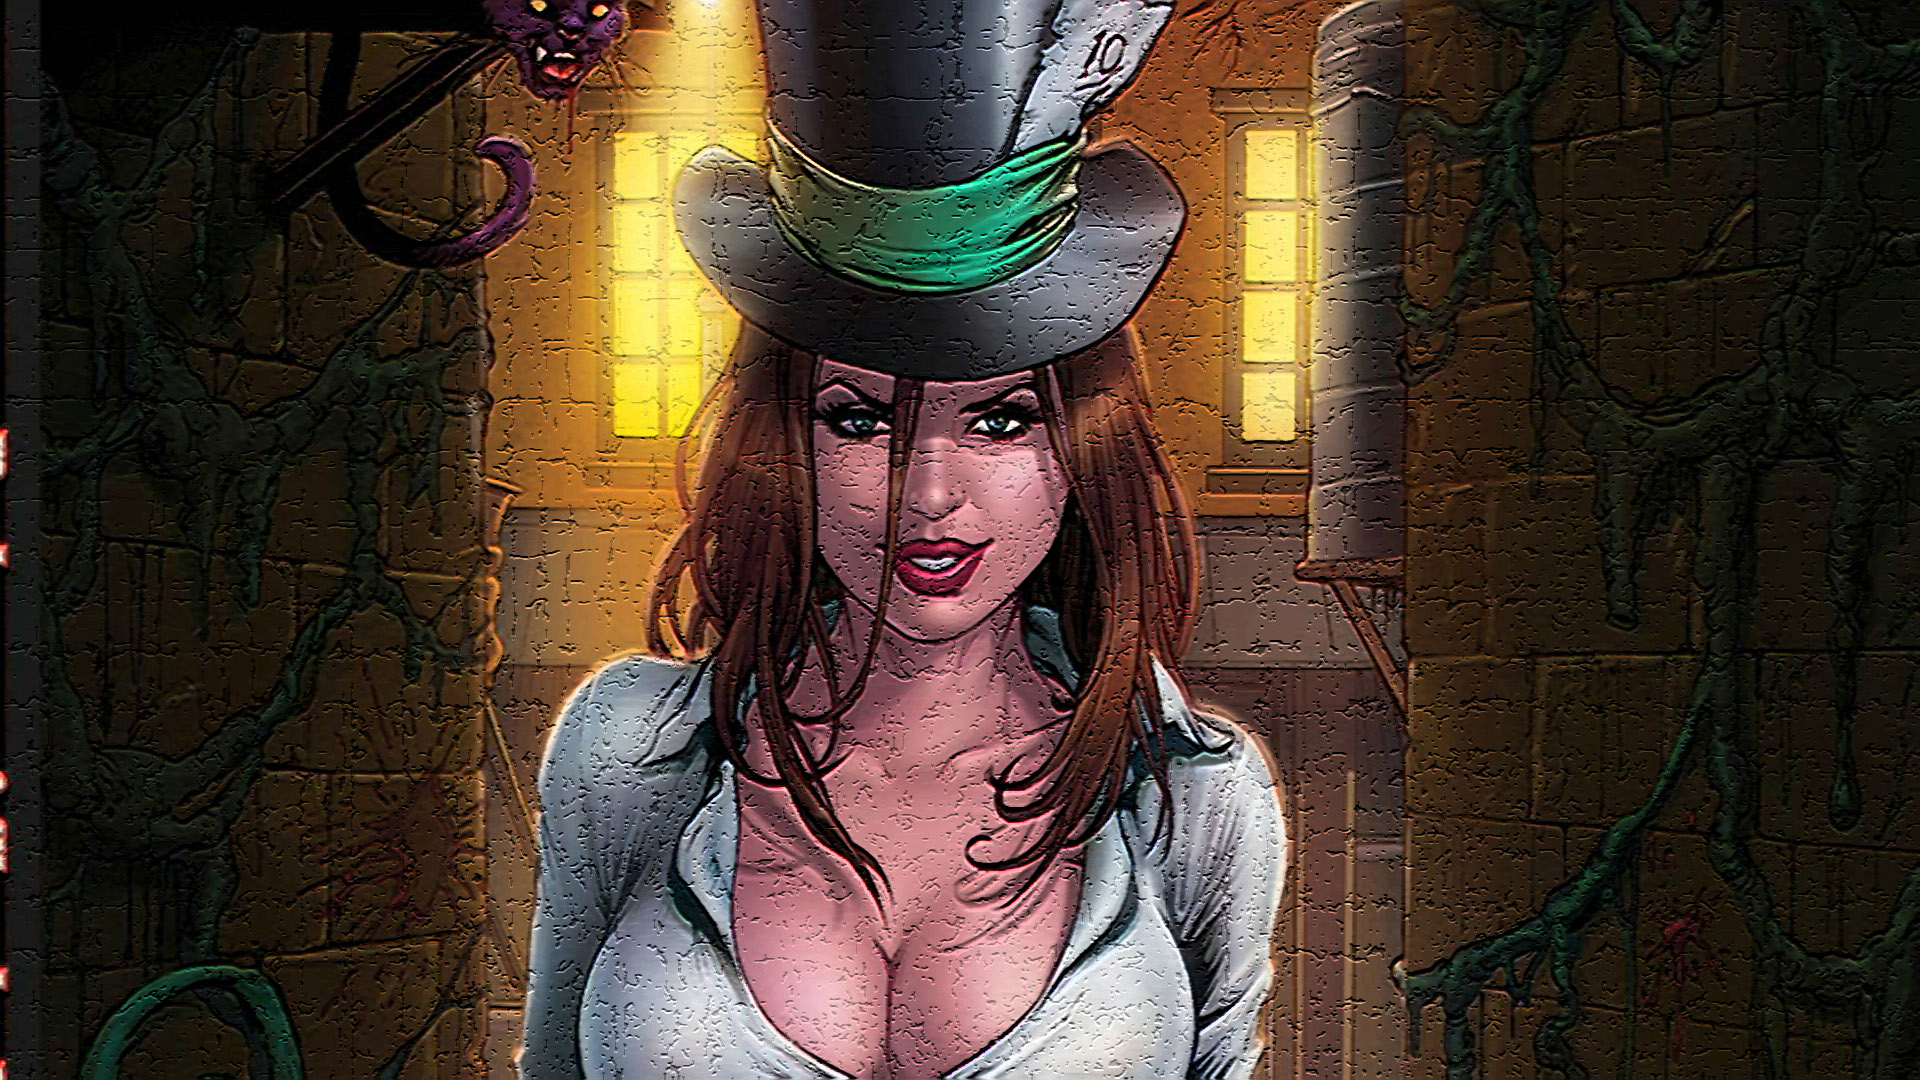 female grimm fairy tales wallpaper - photo #44